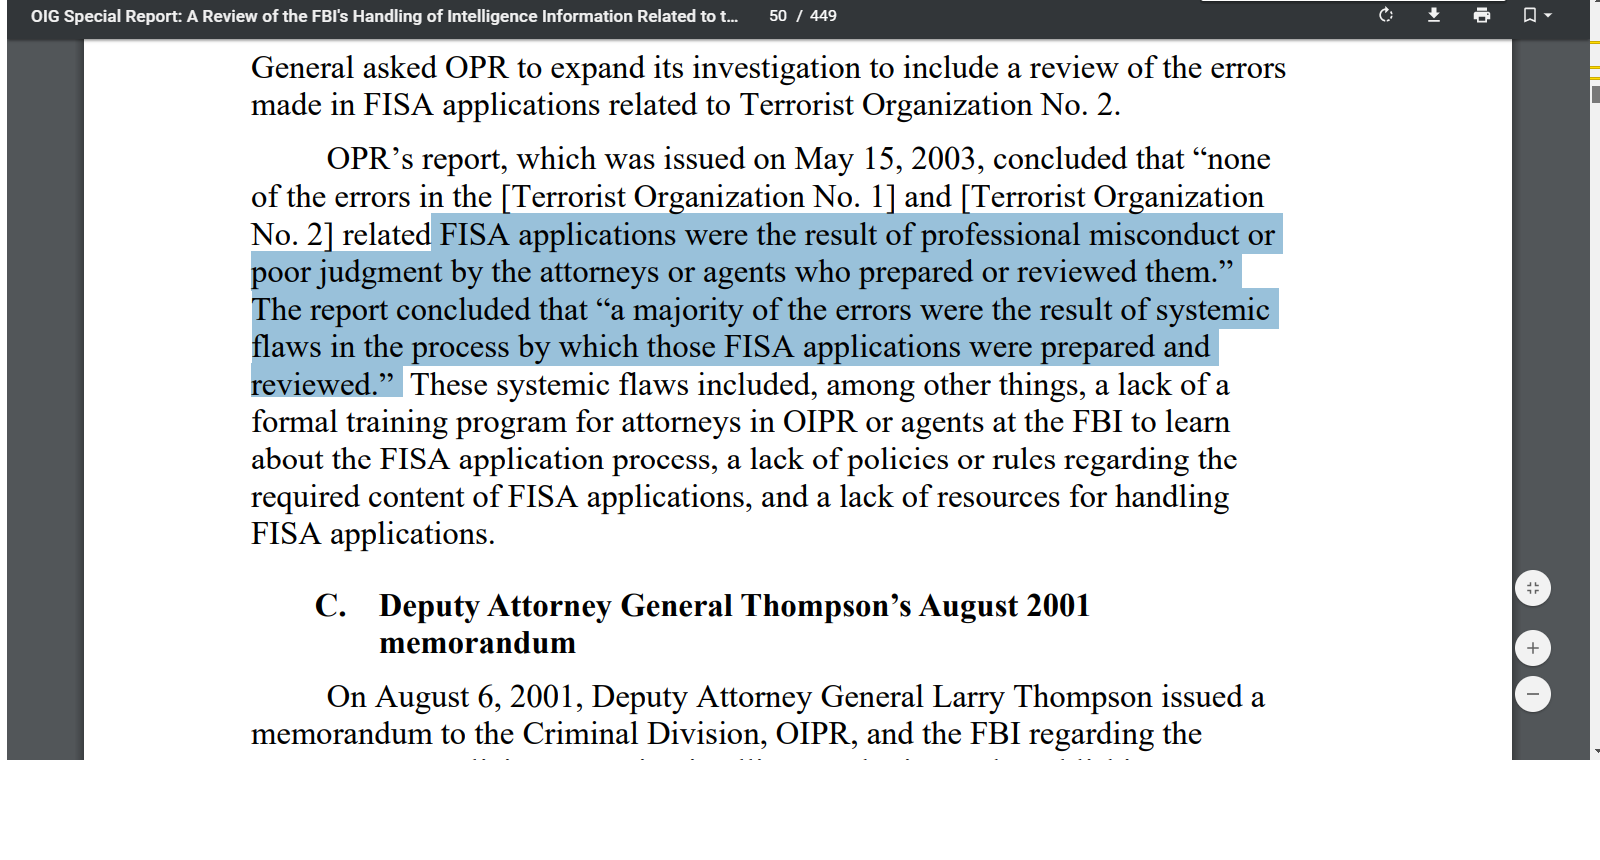 FISA Court's Concern About Accuracy of FISA Applications